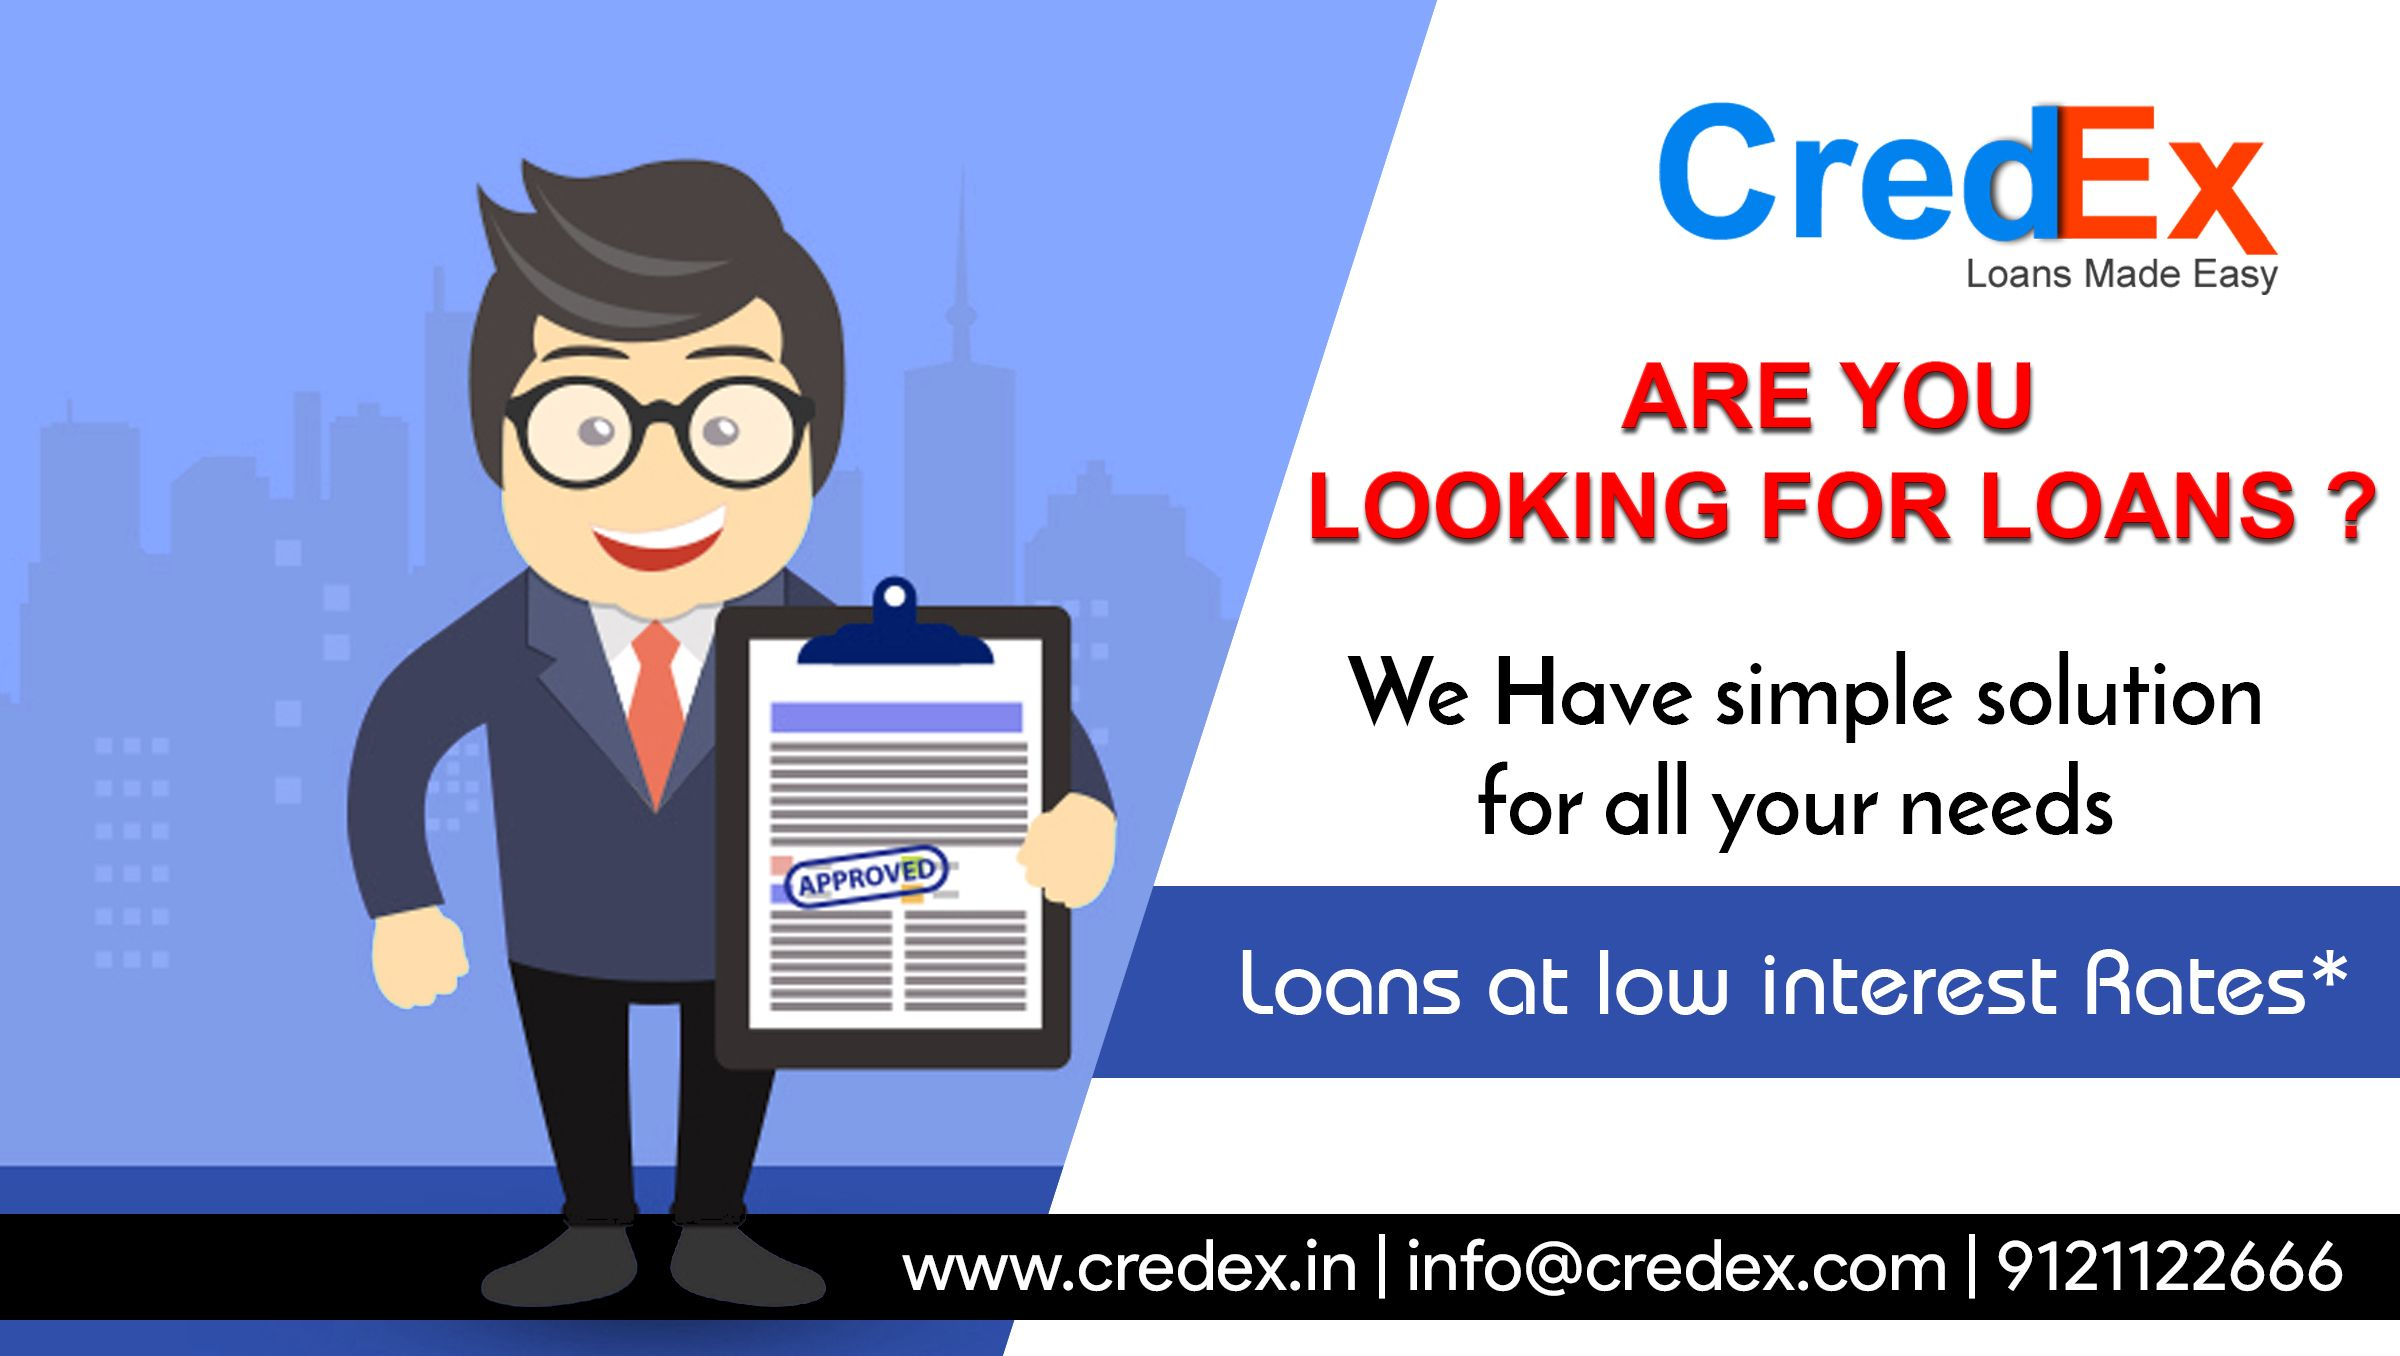 Are You Looking For Loans We Have Simple Solution For All Your Needs Loans At Low Interest Rates Home Business Car Instant Loans Loan Simple Solutions